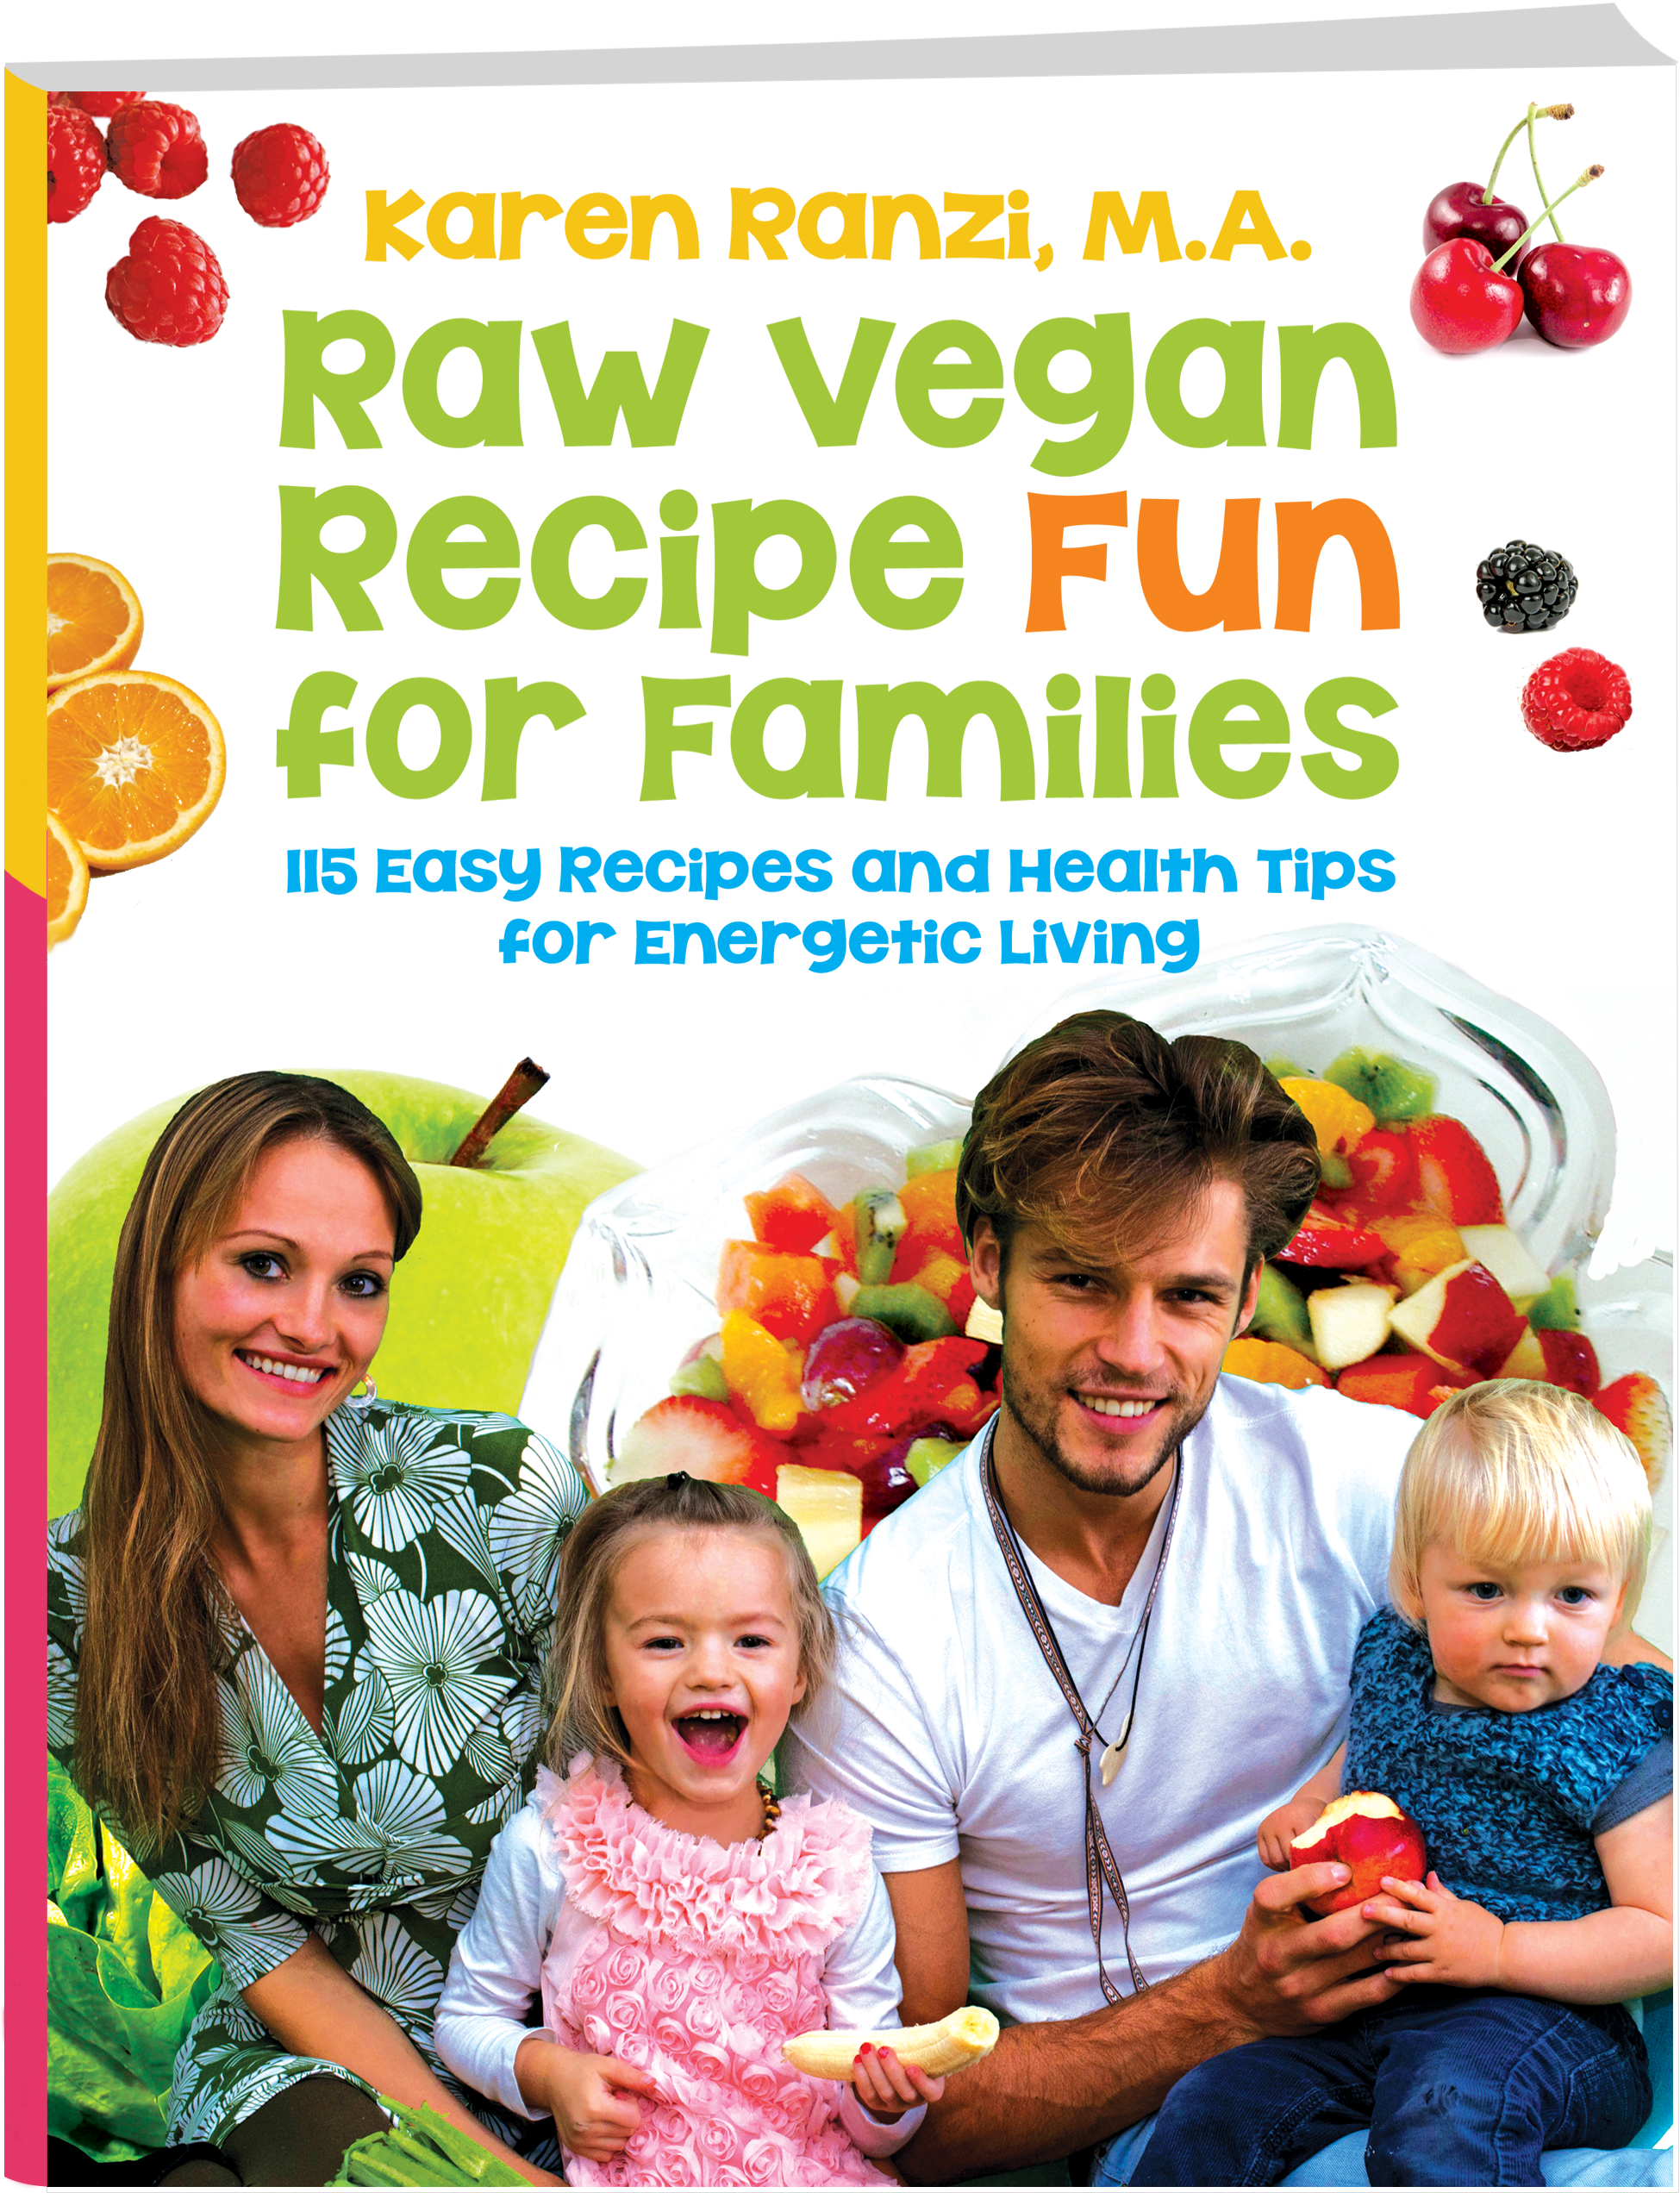 RawVeganRecipeFunforFamilies